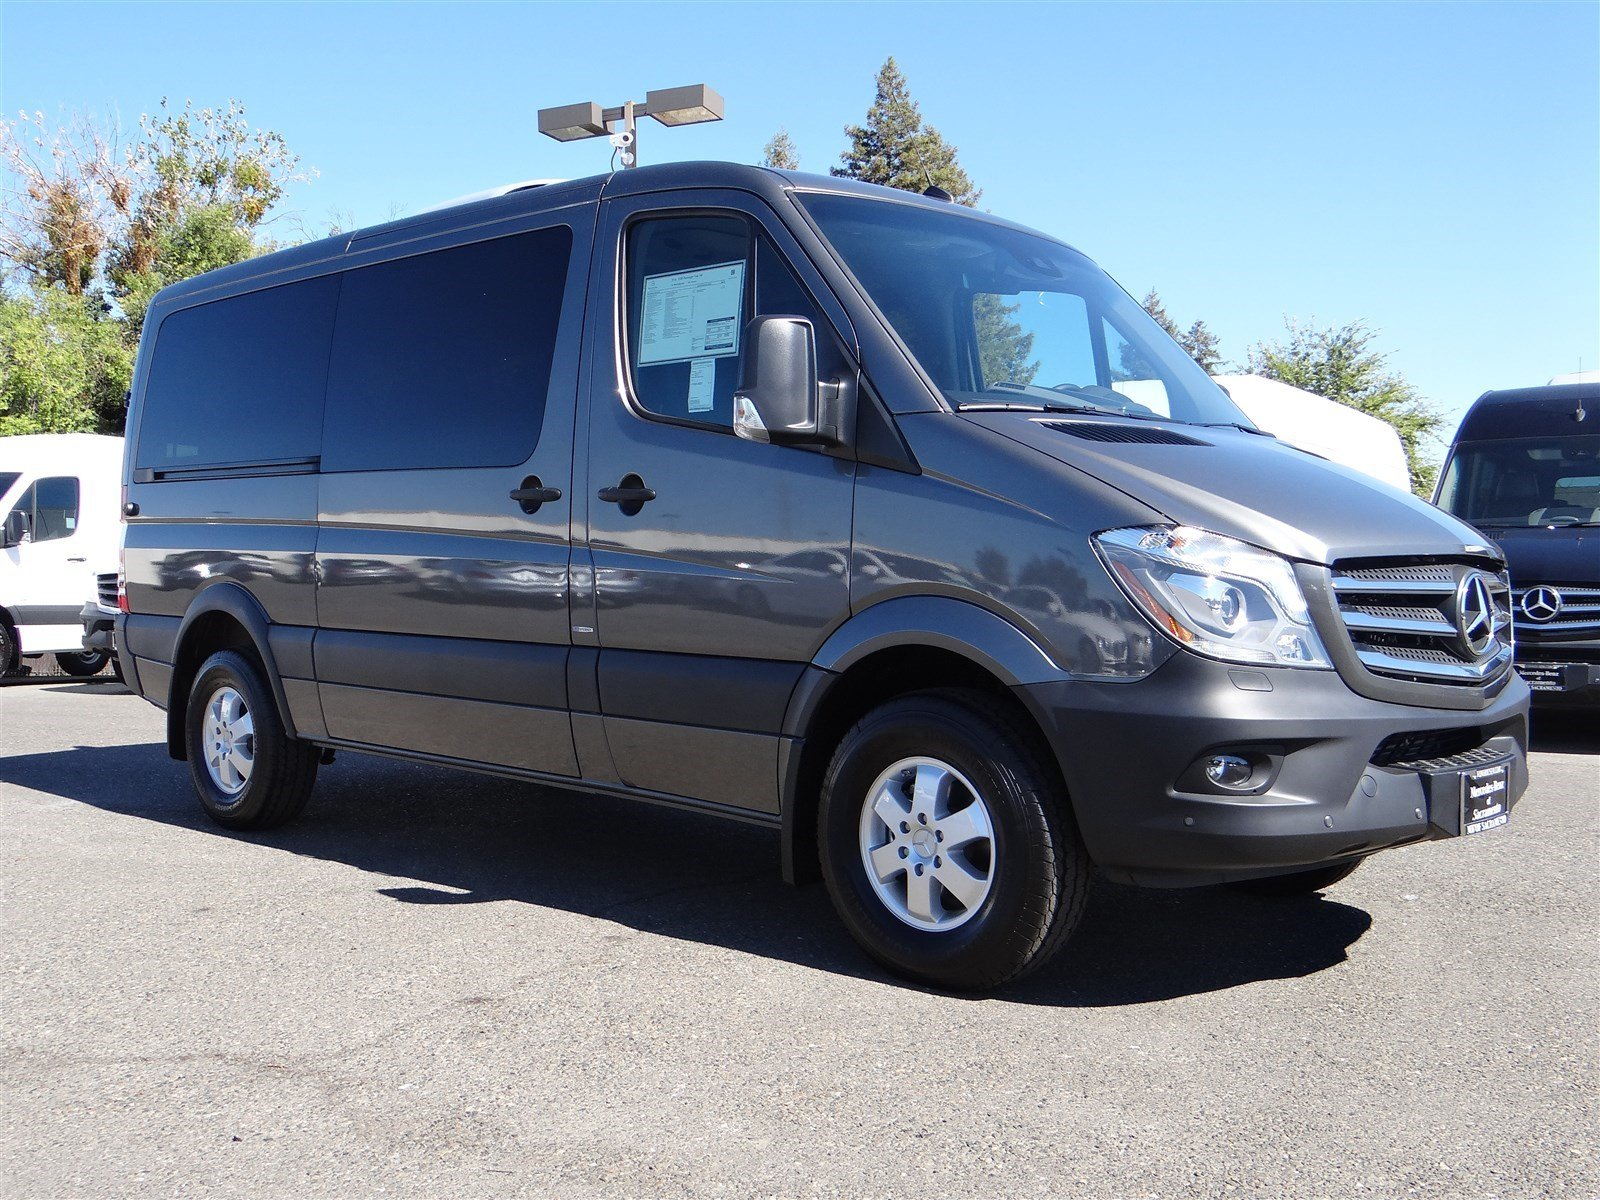 New 2016 mercedes benz sprinter passenger van in rocklin for New mercedes benz sprinter